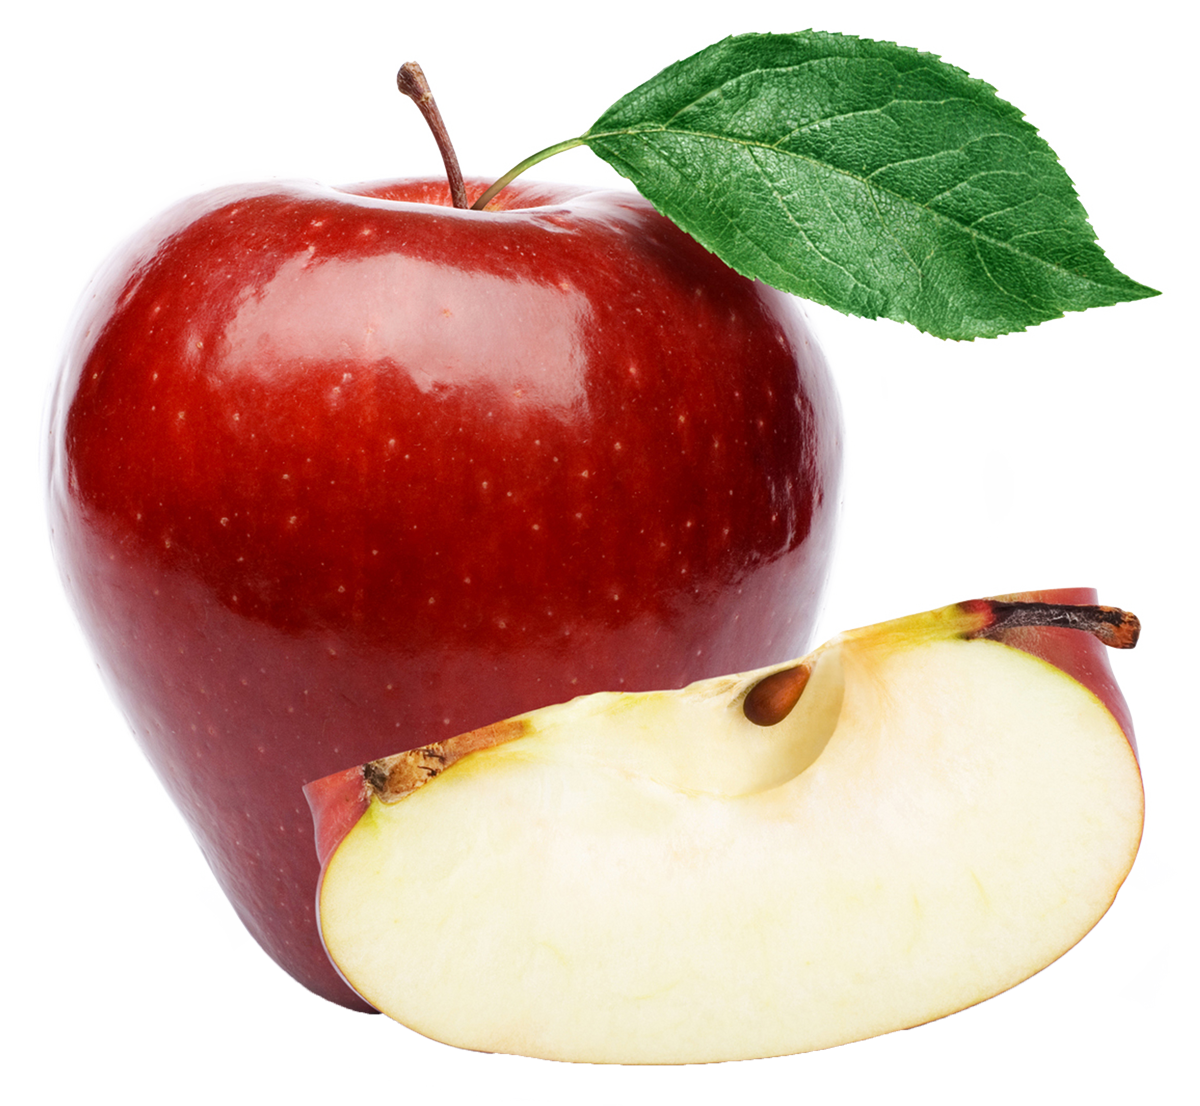 apple png with leaf 11745